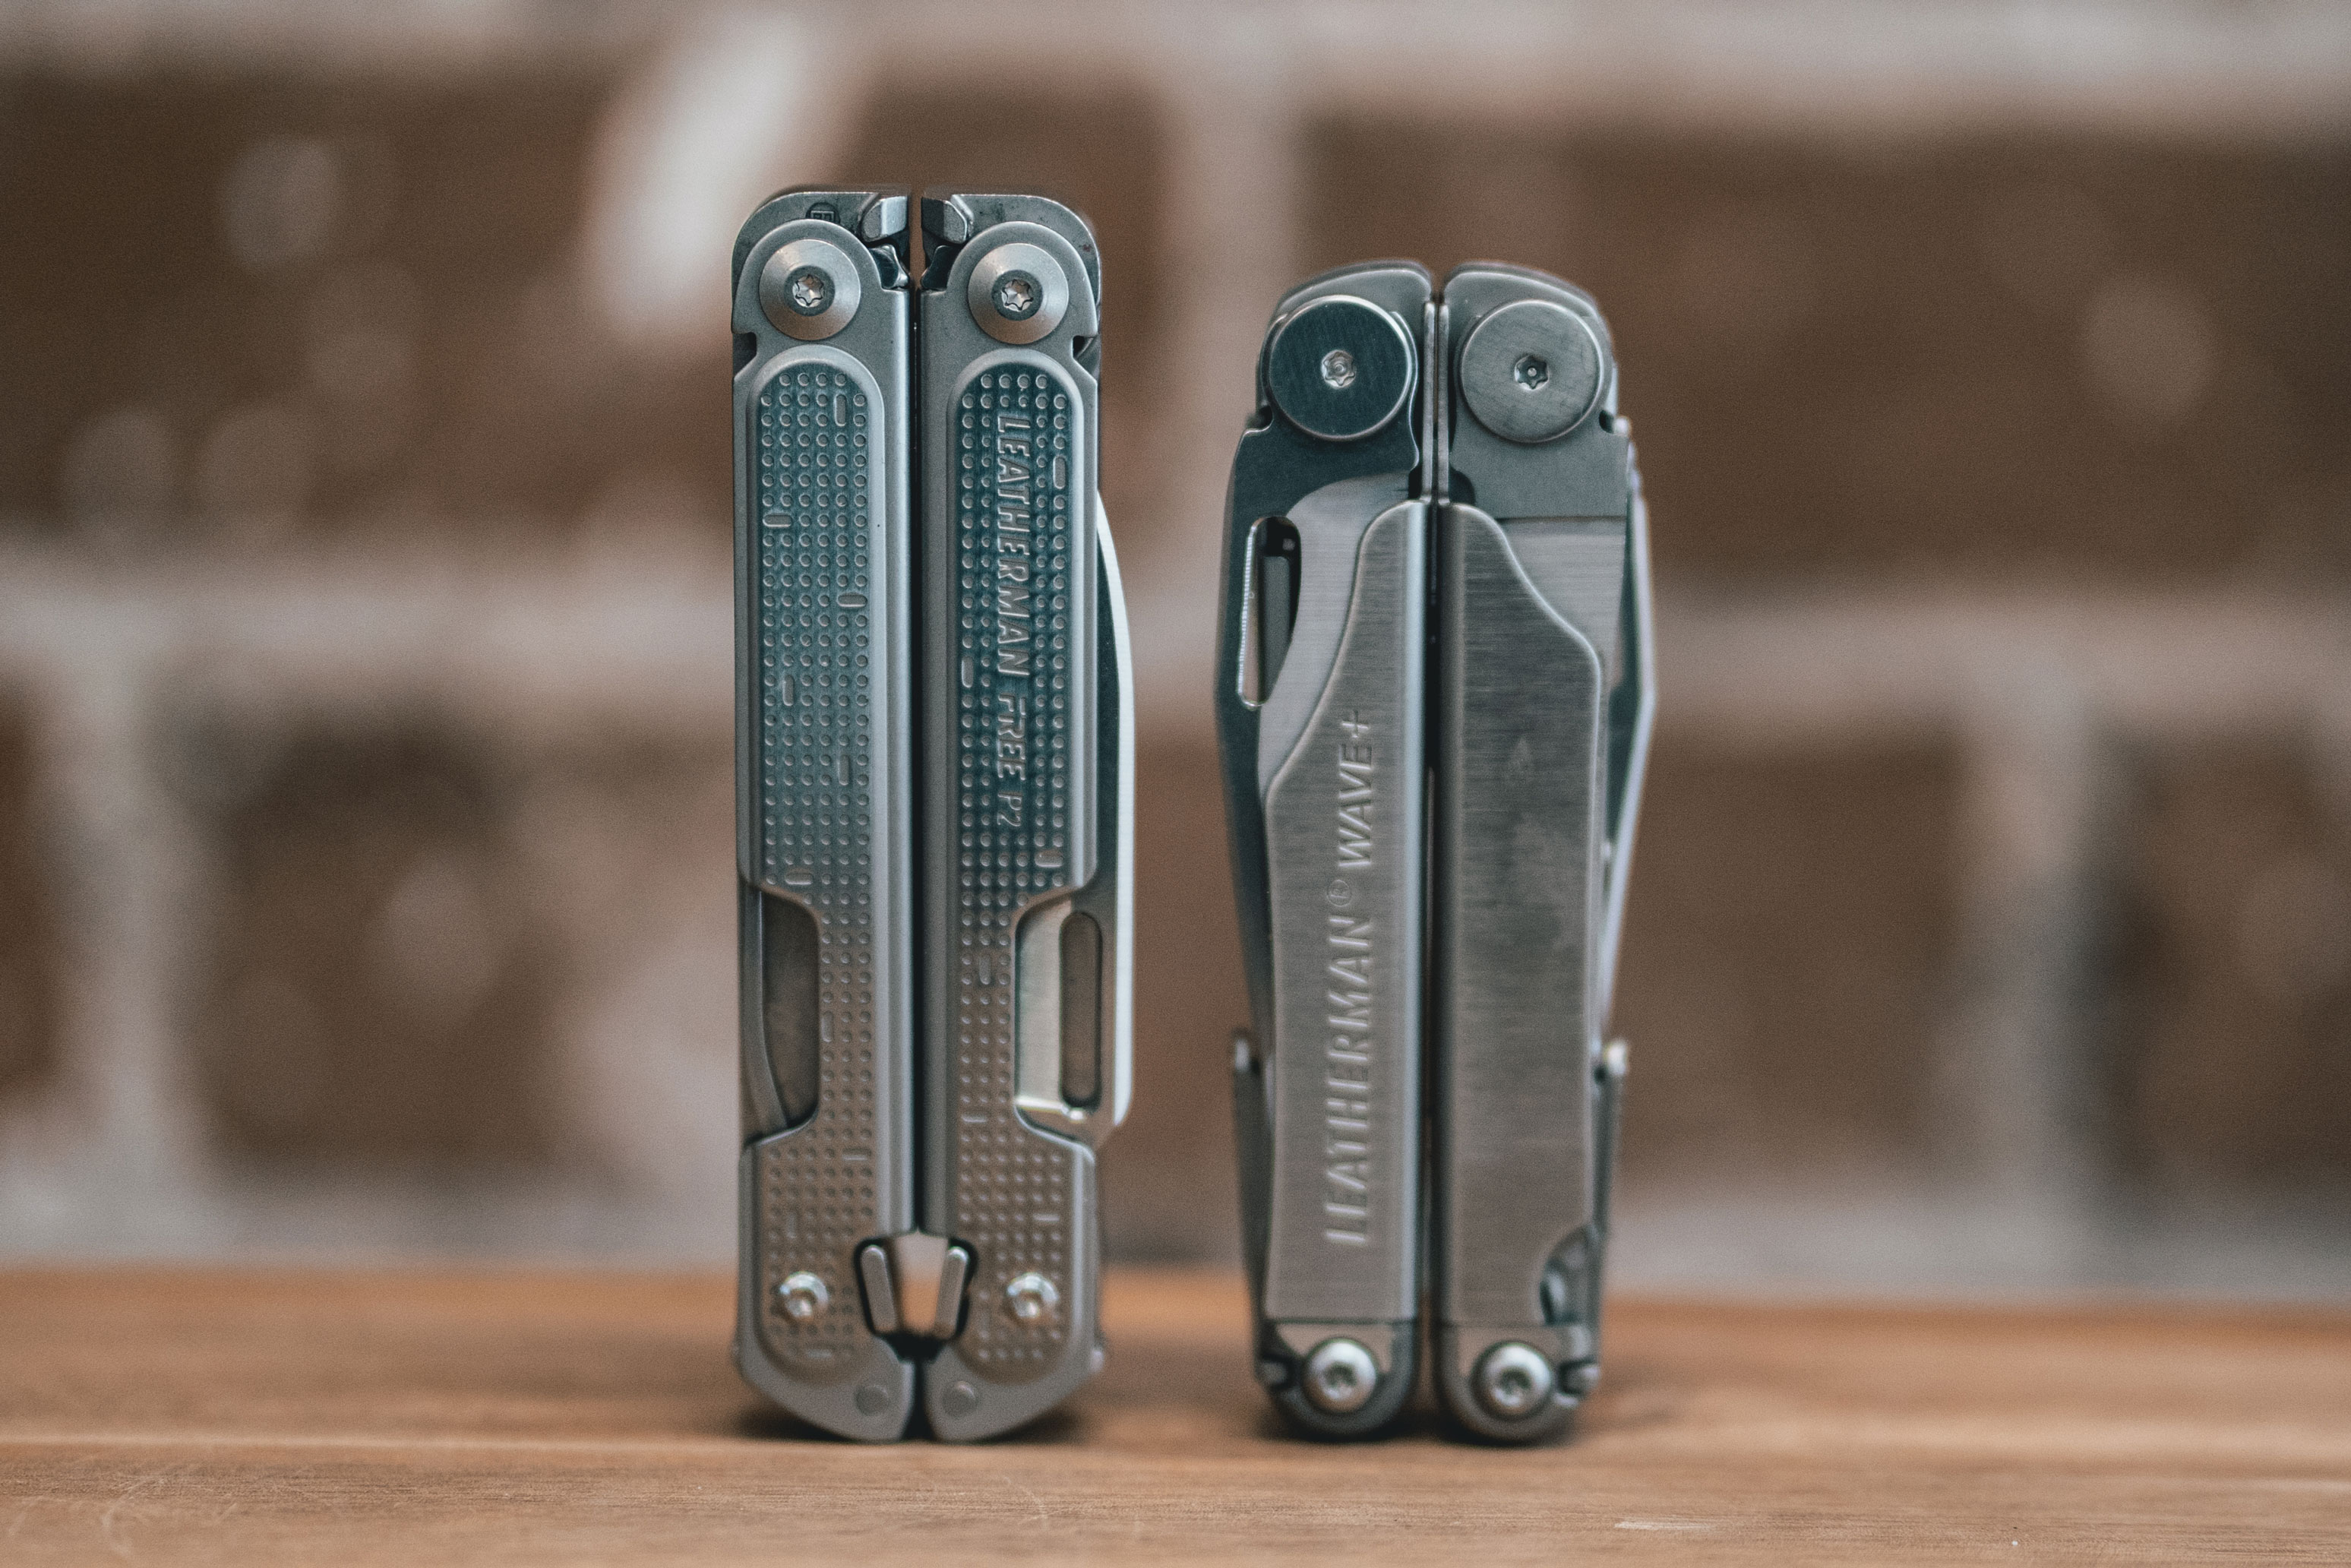 Leatherman Free Wave size comparison